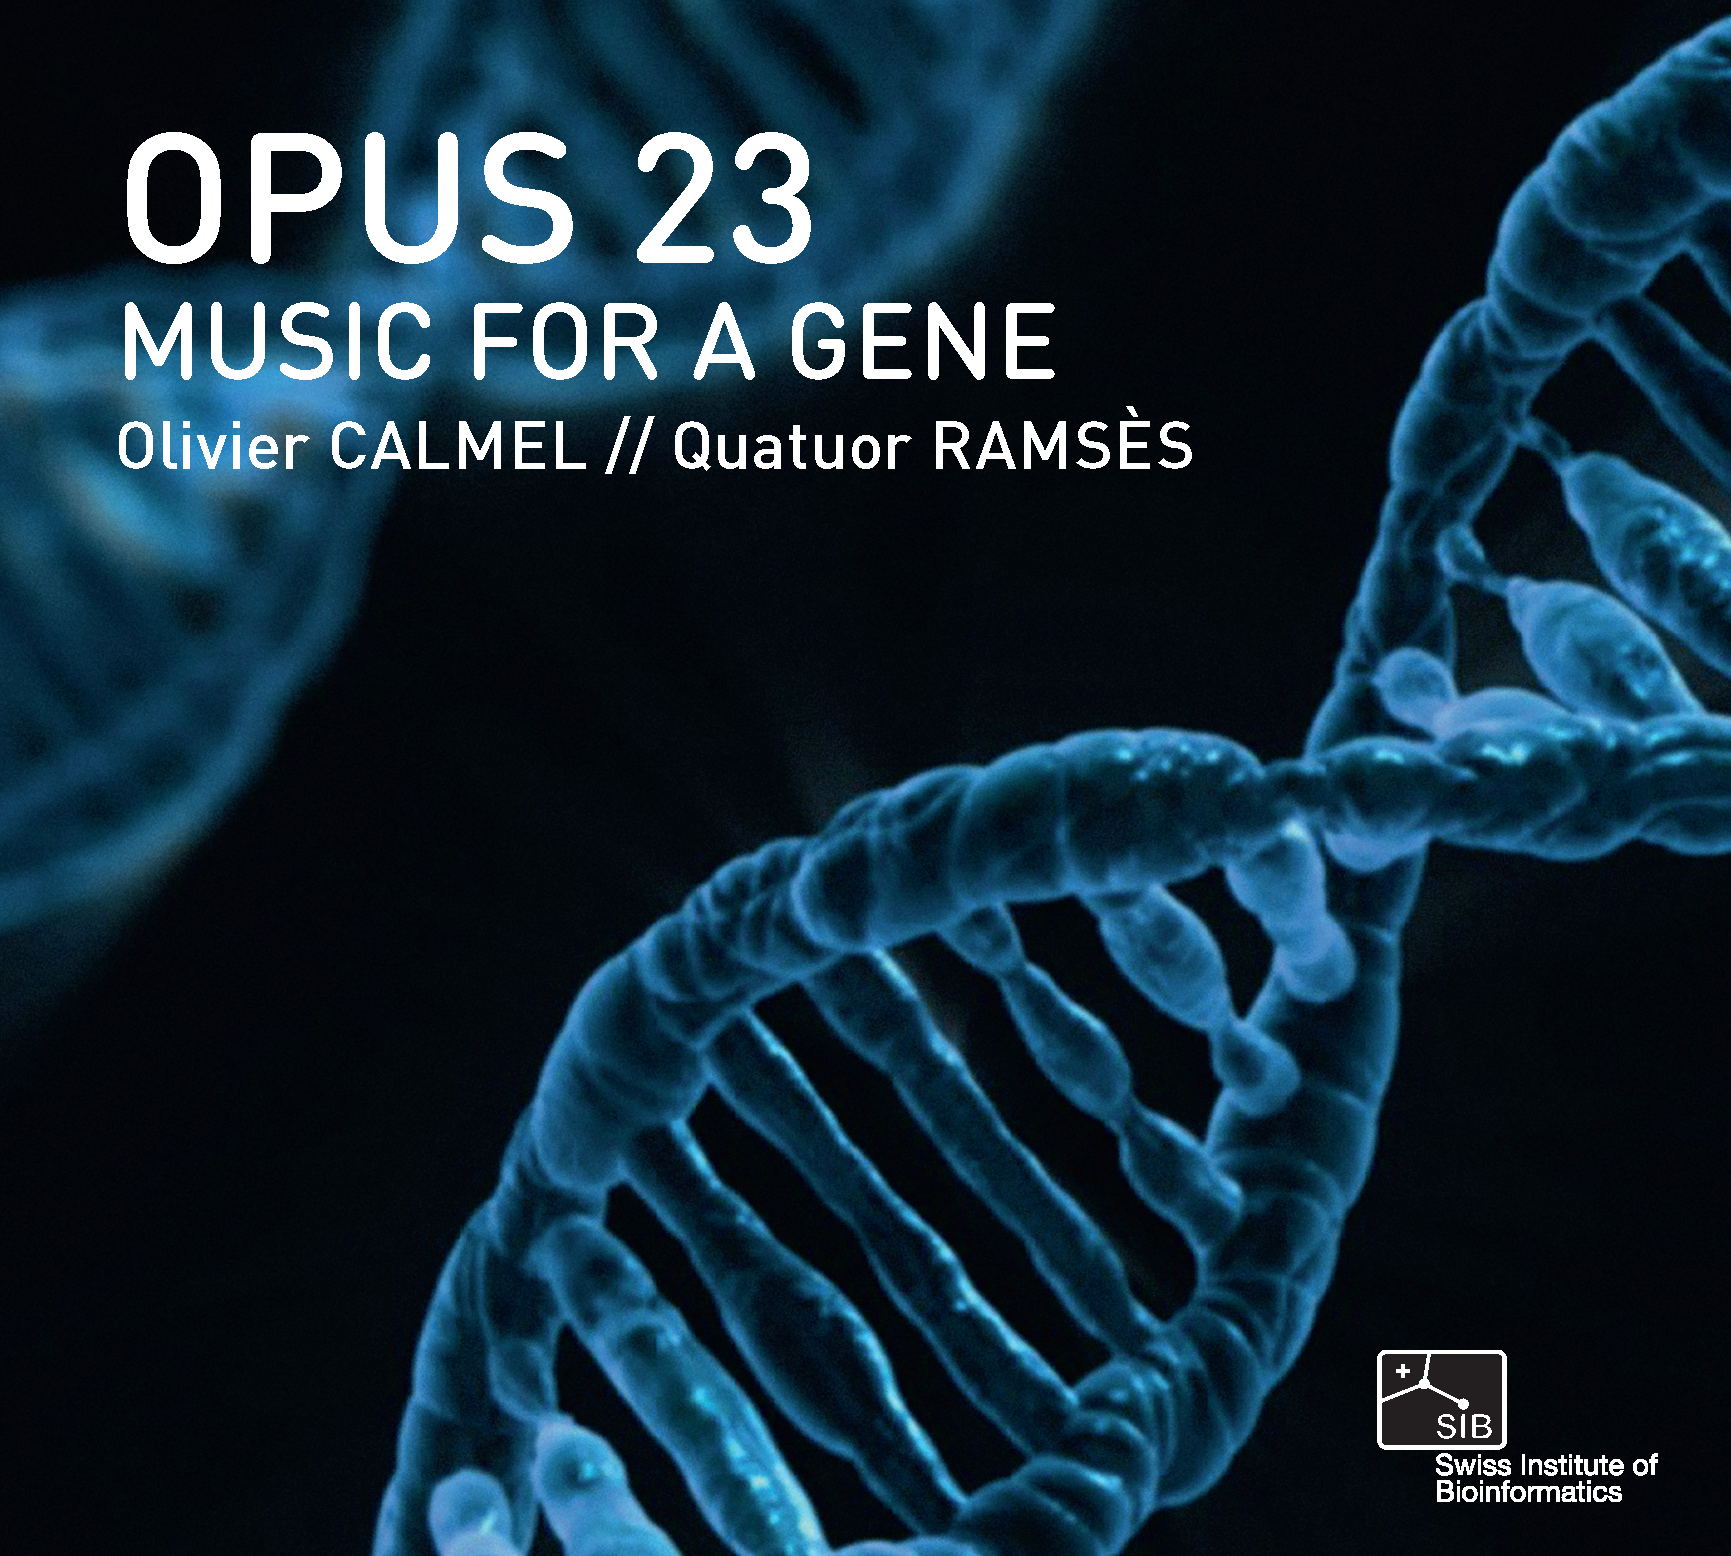 opus 23 cd cover